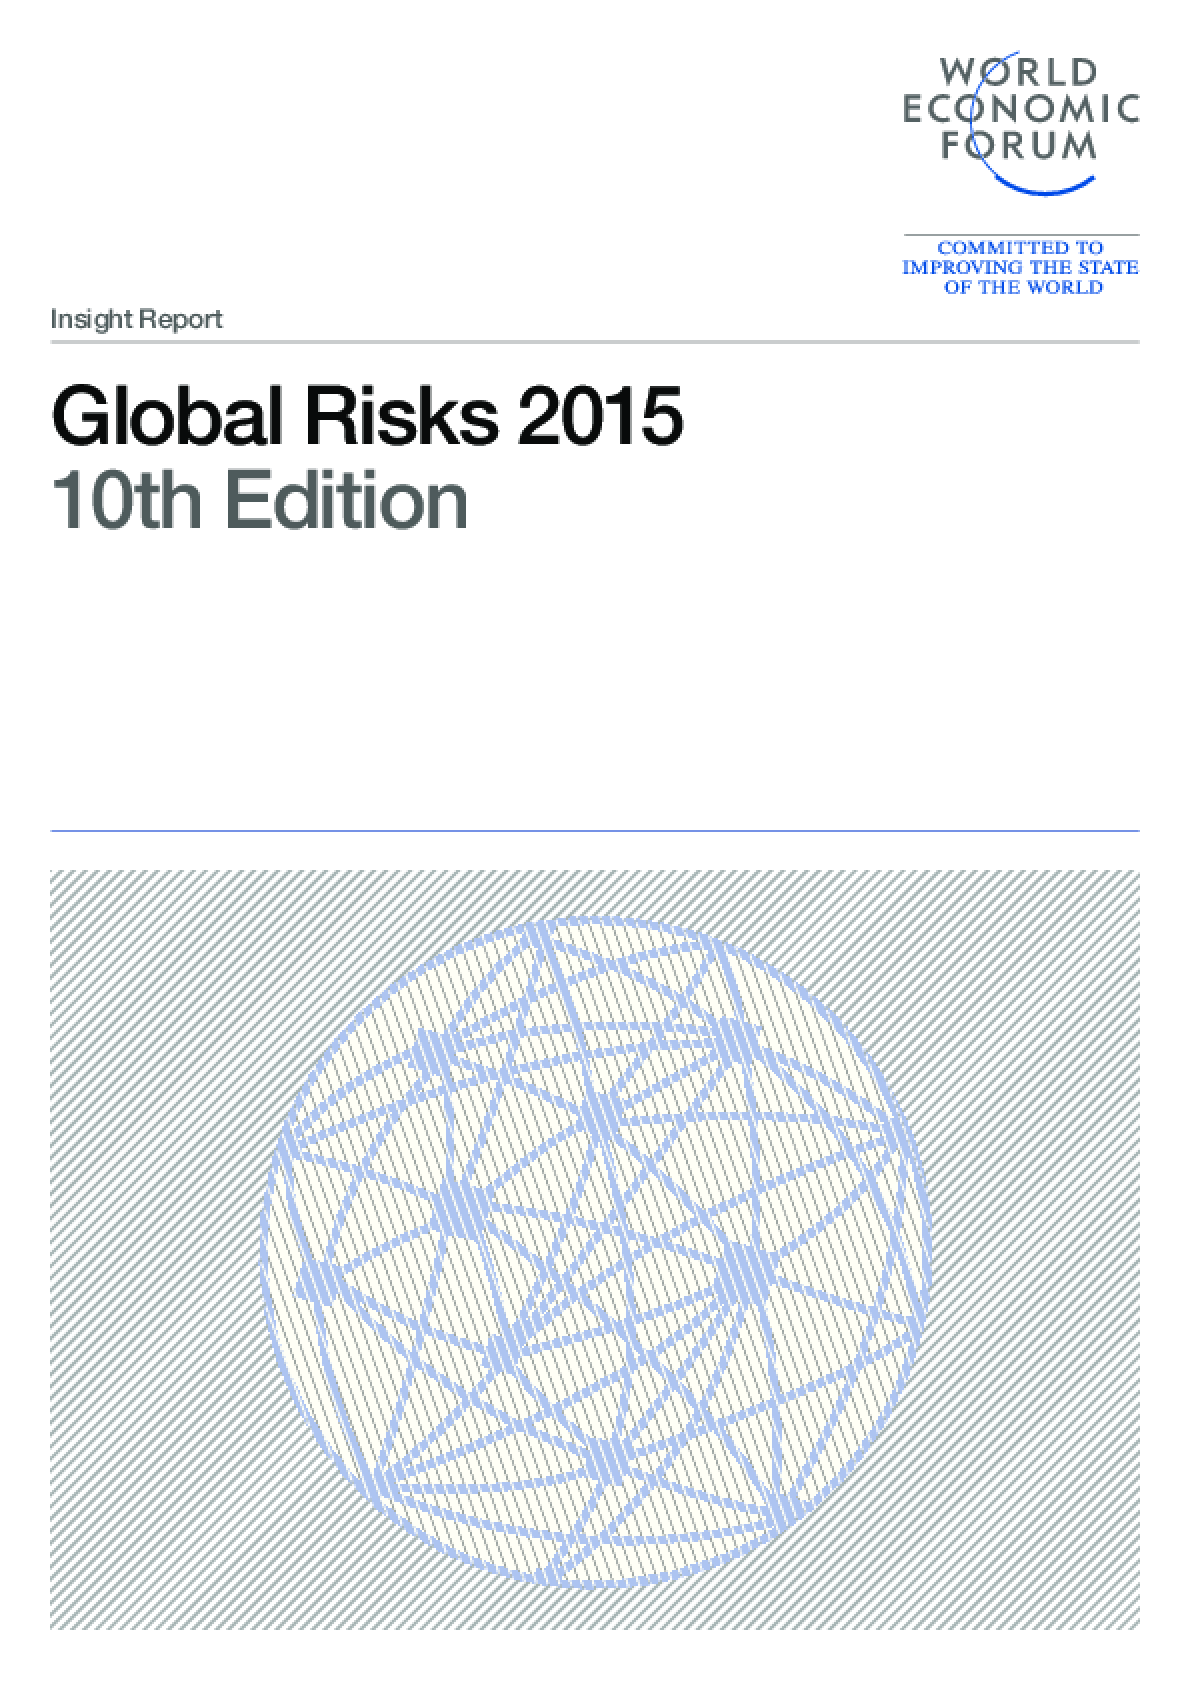 Global Risks 2015, 10th Edition.